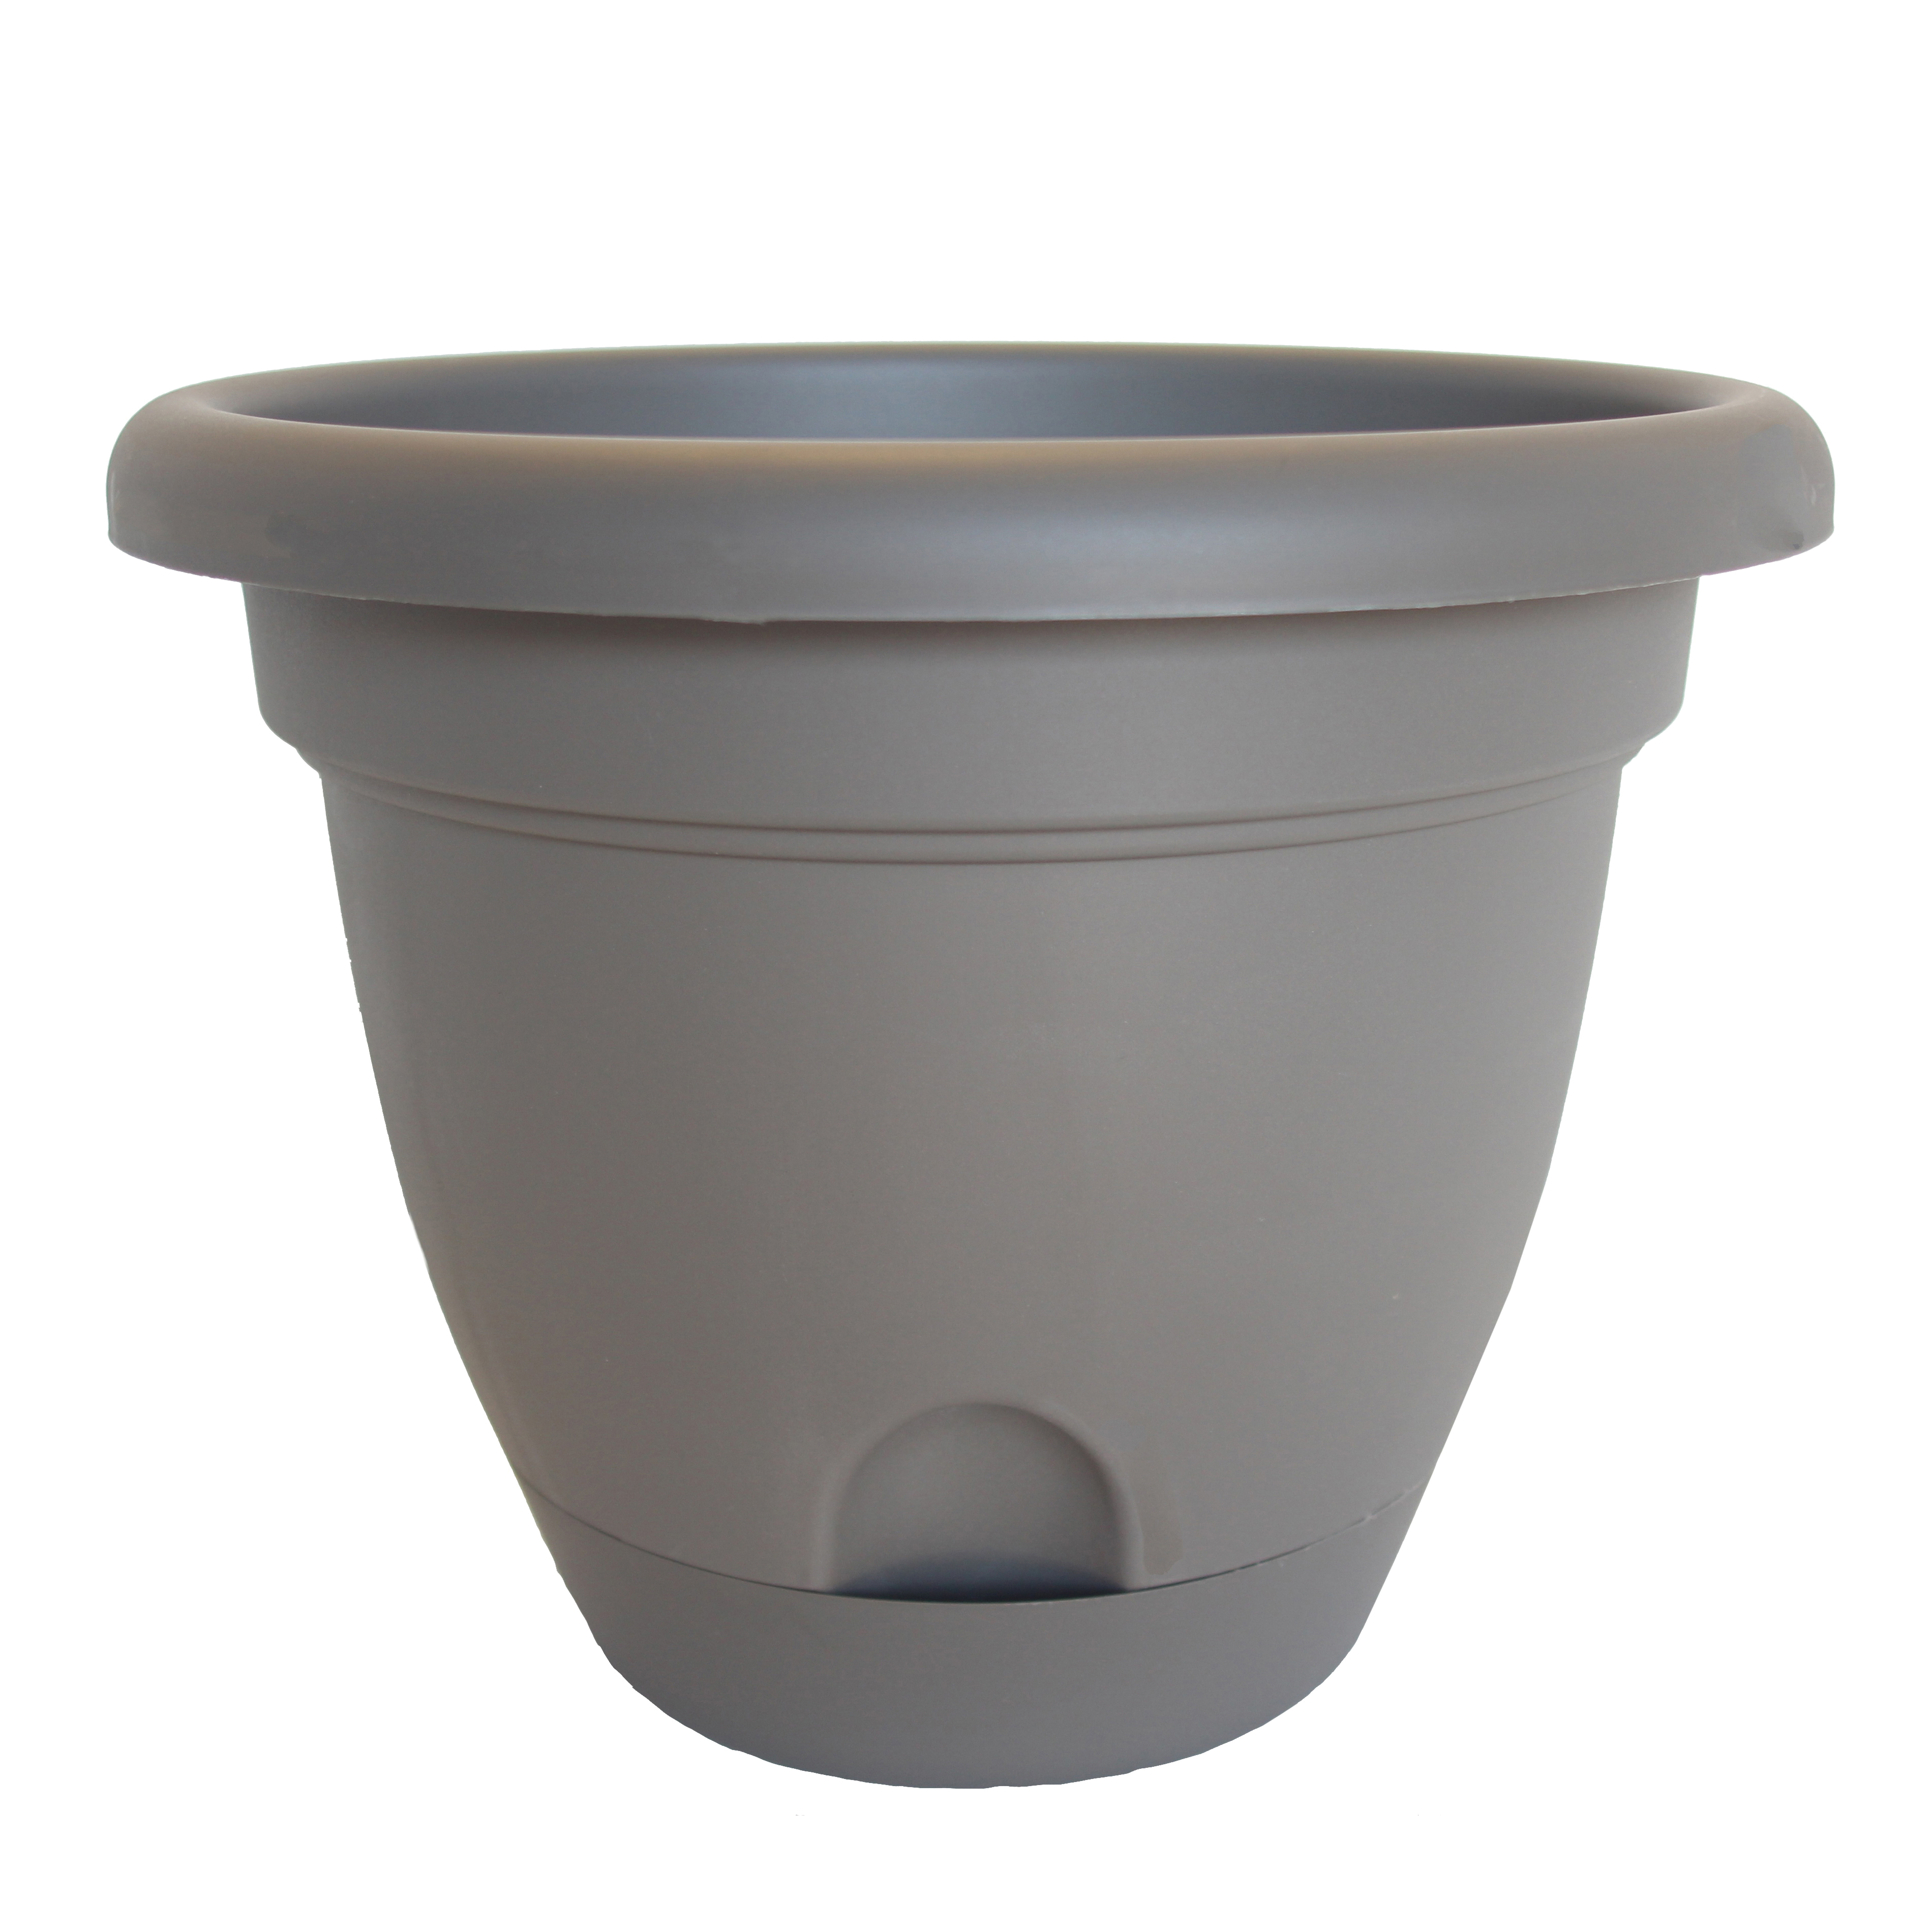 Picture of Bloem Lucca LP1260 Planter, 10.8 in W, Polypropylene, Peppercorn